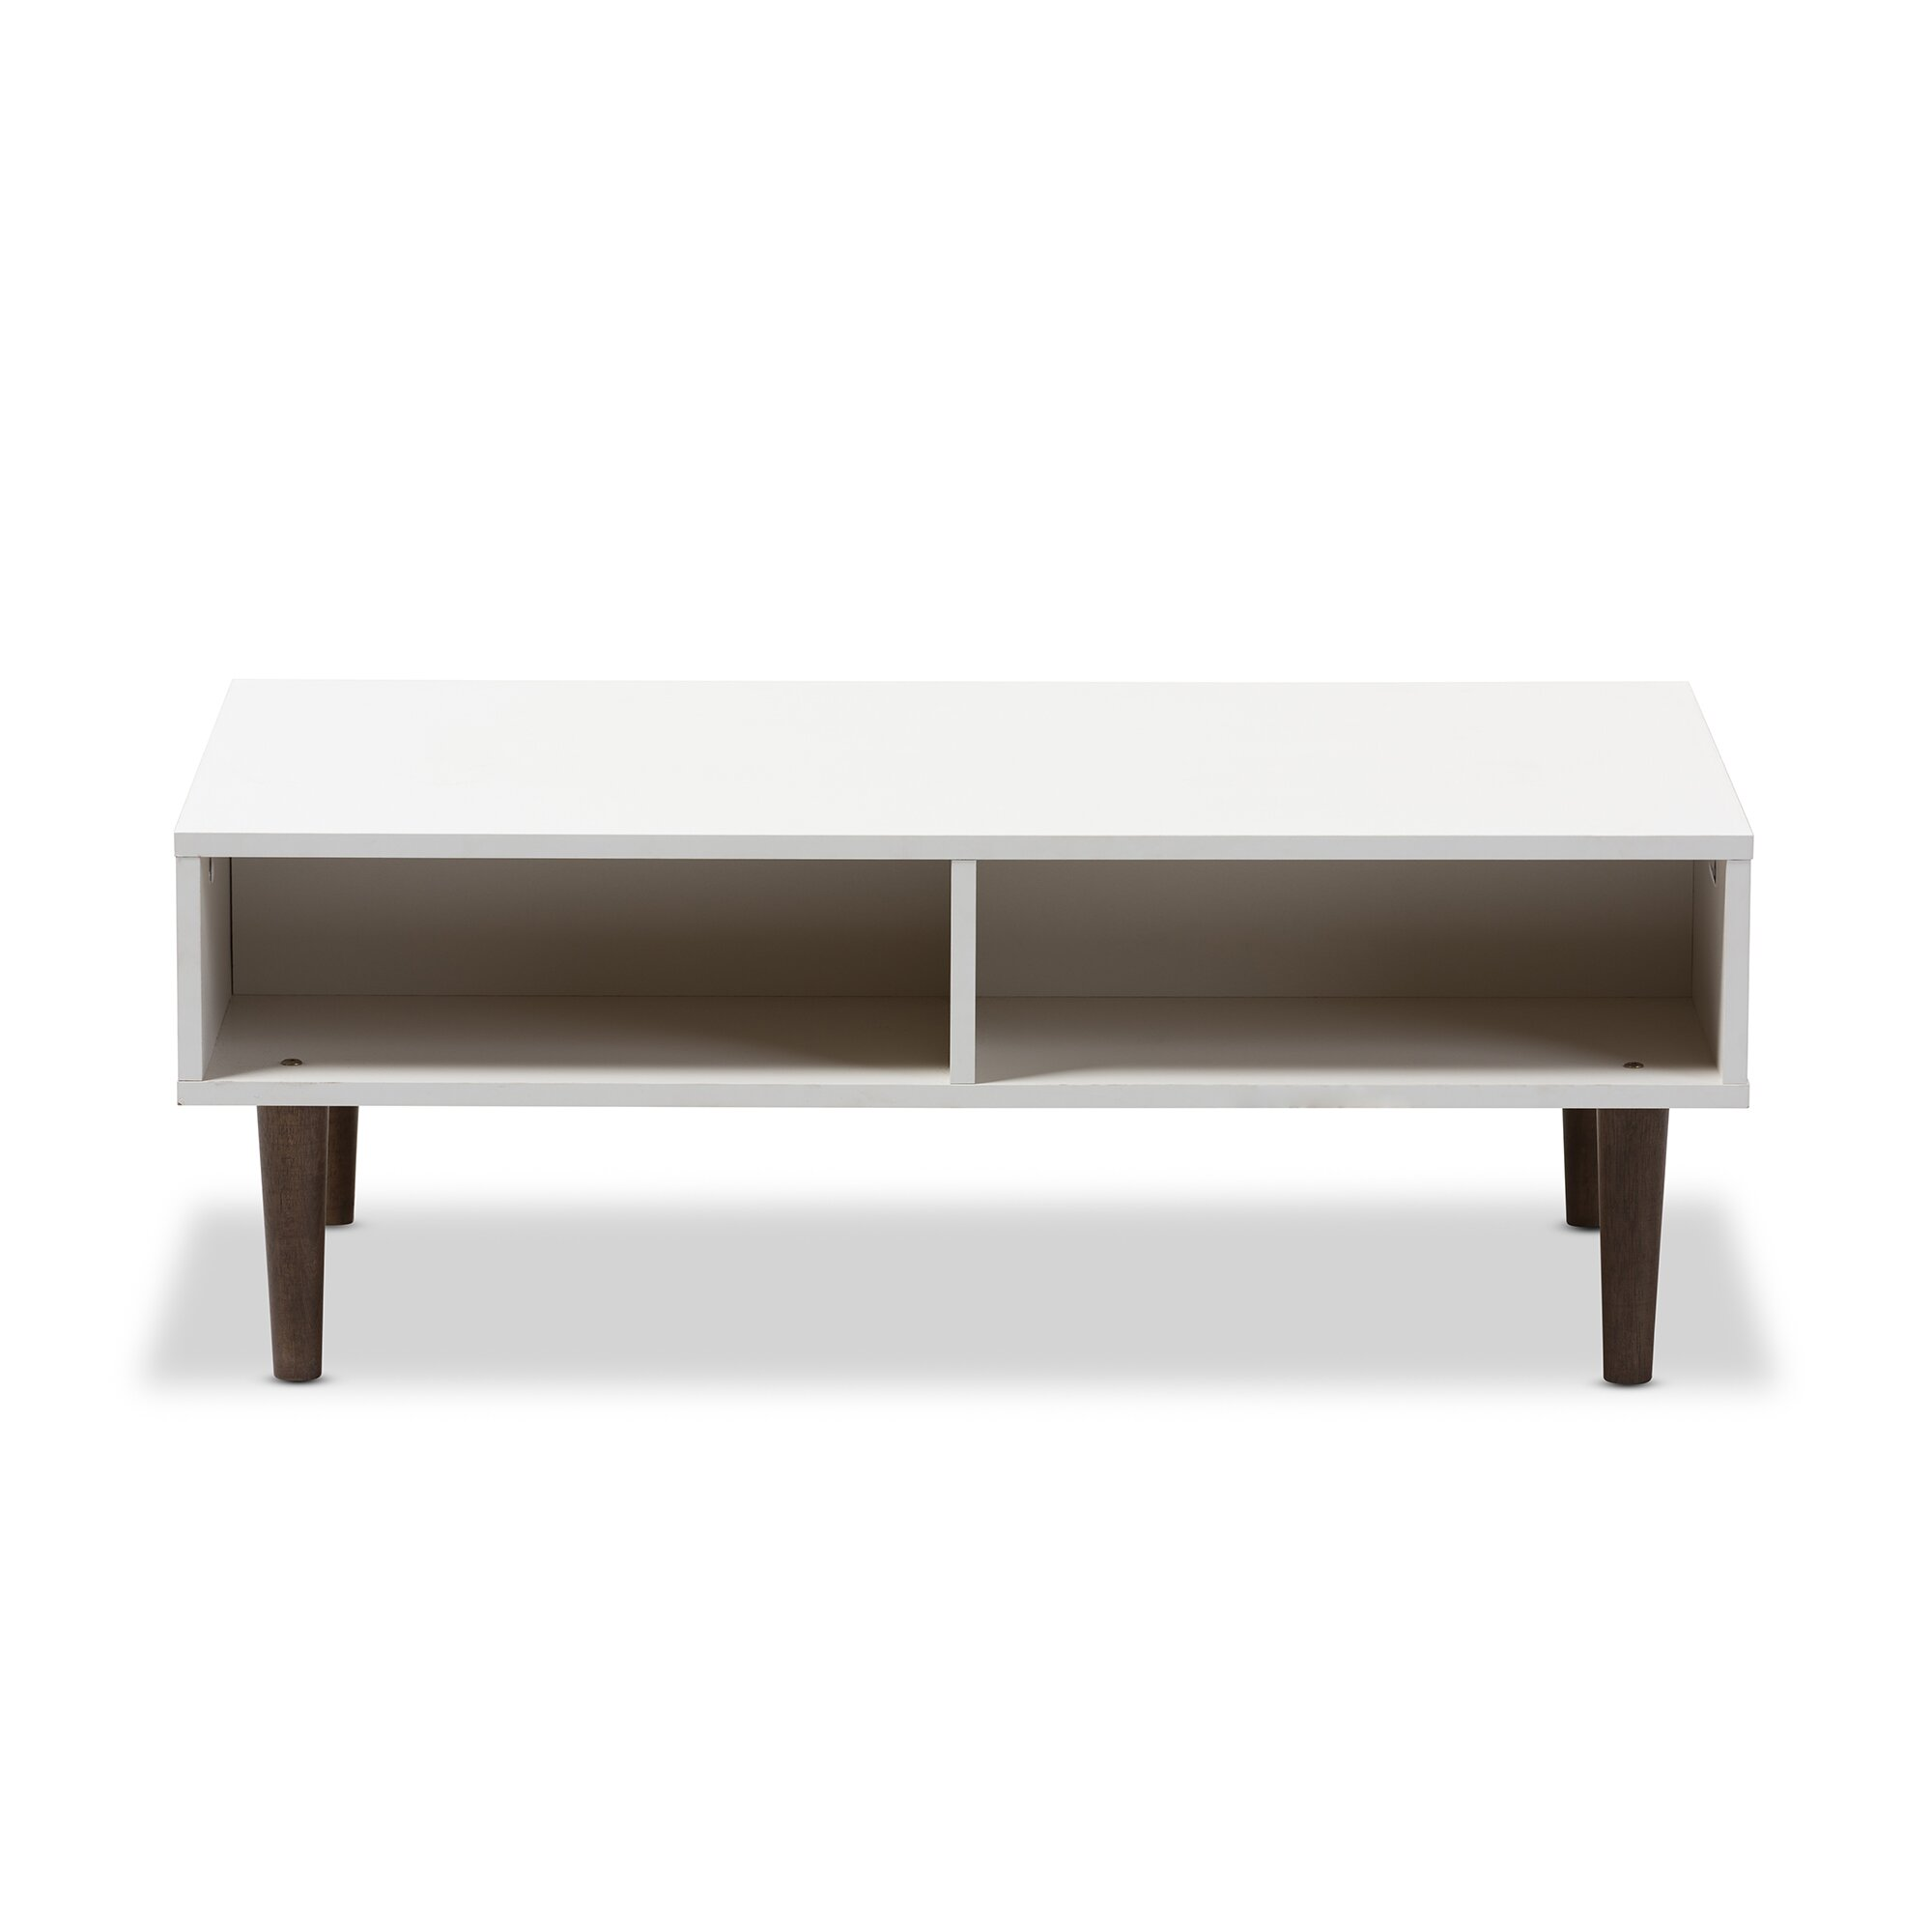 Wholesale Interiors Baxton Studio Coffee Table amp Reviews  : BaxtonStudioCoffeeTable from www.wayfair.ca size 2000 x 2000 jpeg 65kB